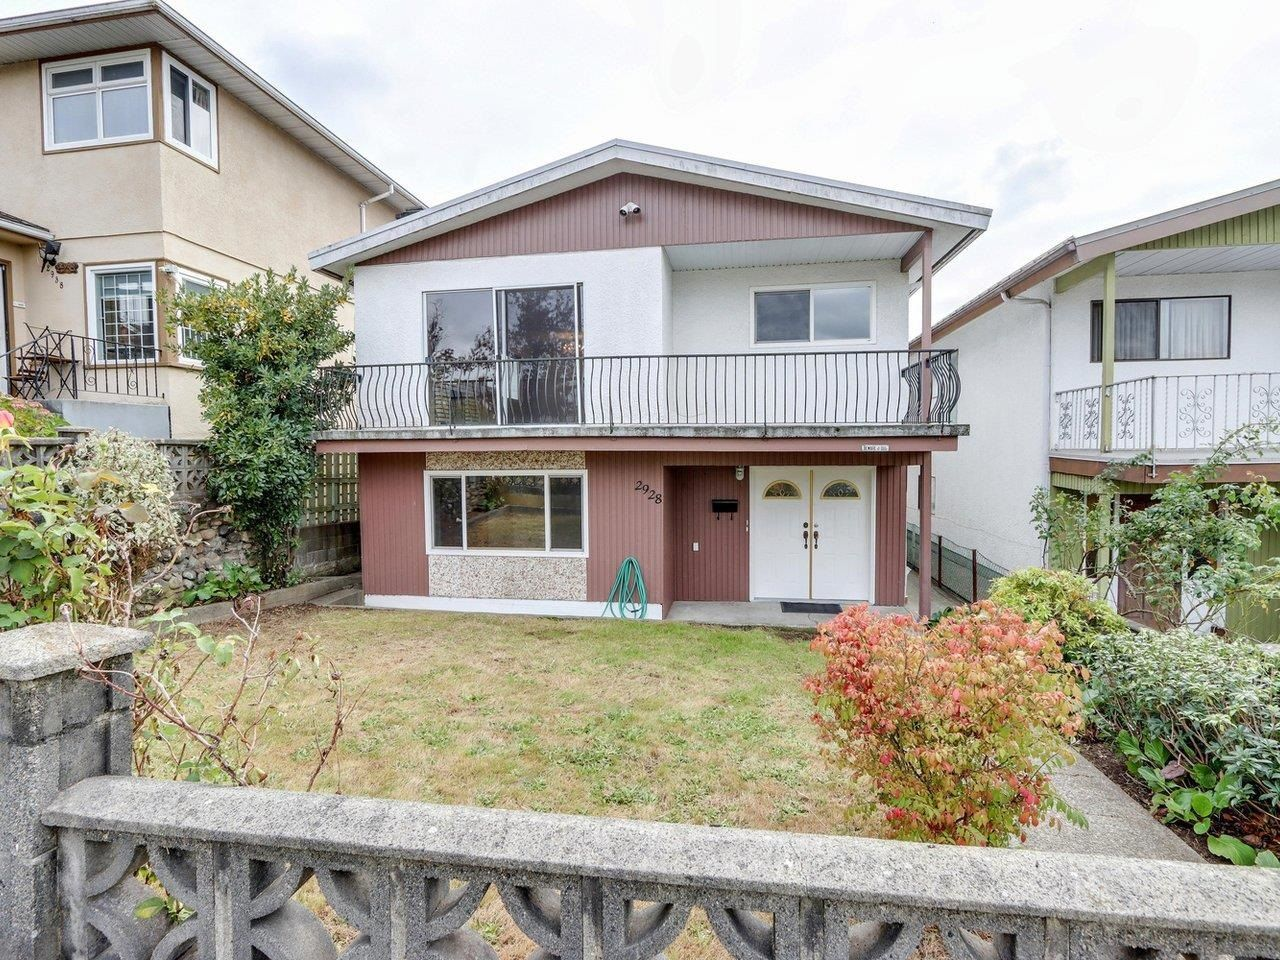 """Main Photo: 2928 E 6TH Avenue in Vancouver: Renfrew VE House for sale in """"RENFREW"""" (Vancouver East)  : MLS®# R2620288"""